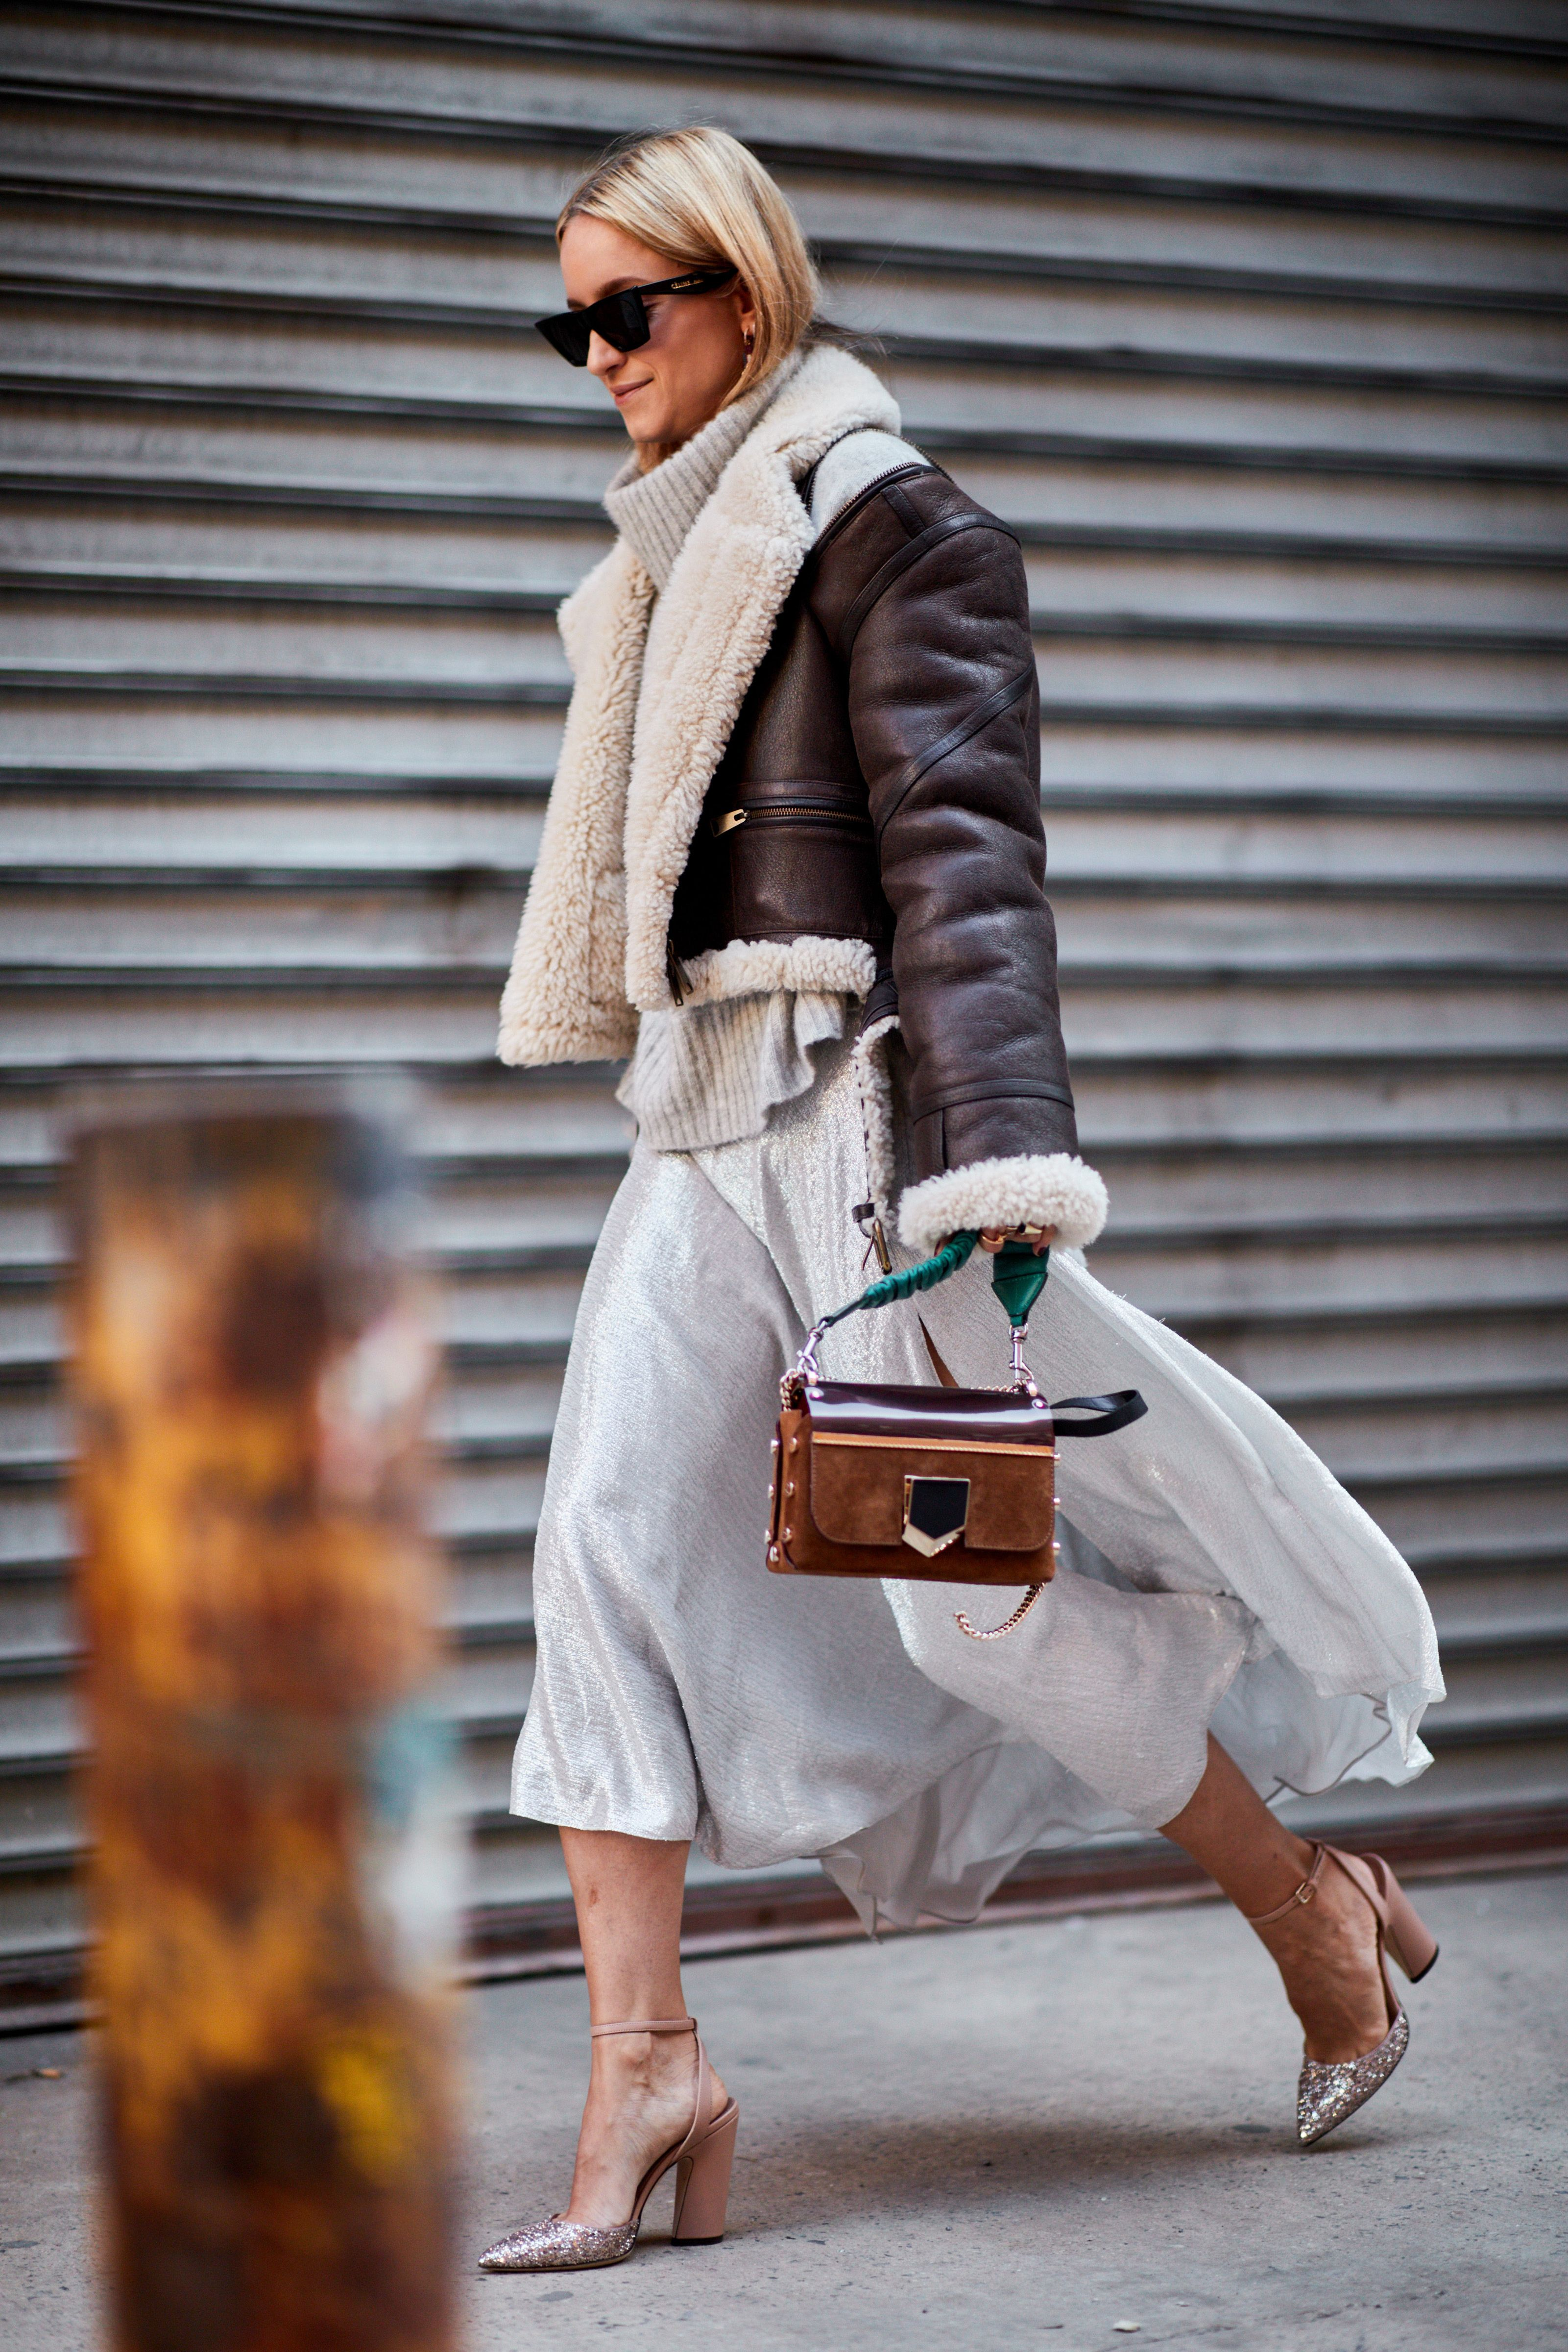 Fashion week Spring nyfw brightest street style moments for girls